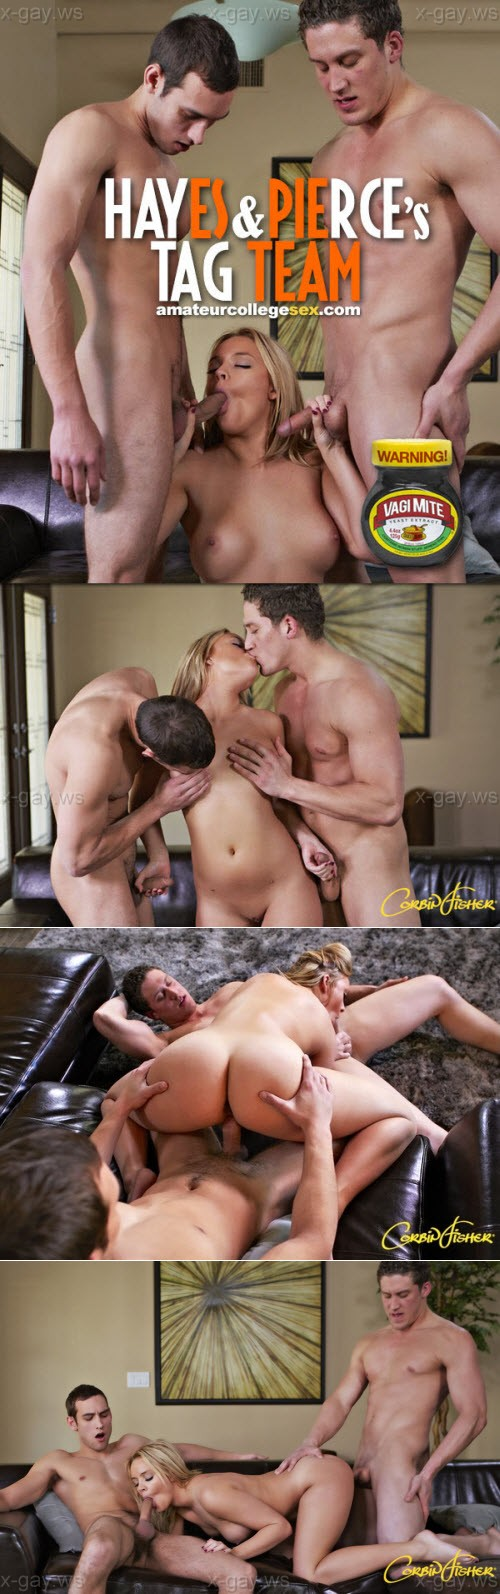 CorbinFisher – Hayes & Pierce's Tag Team, Bareback